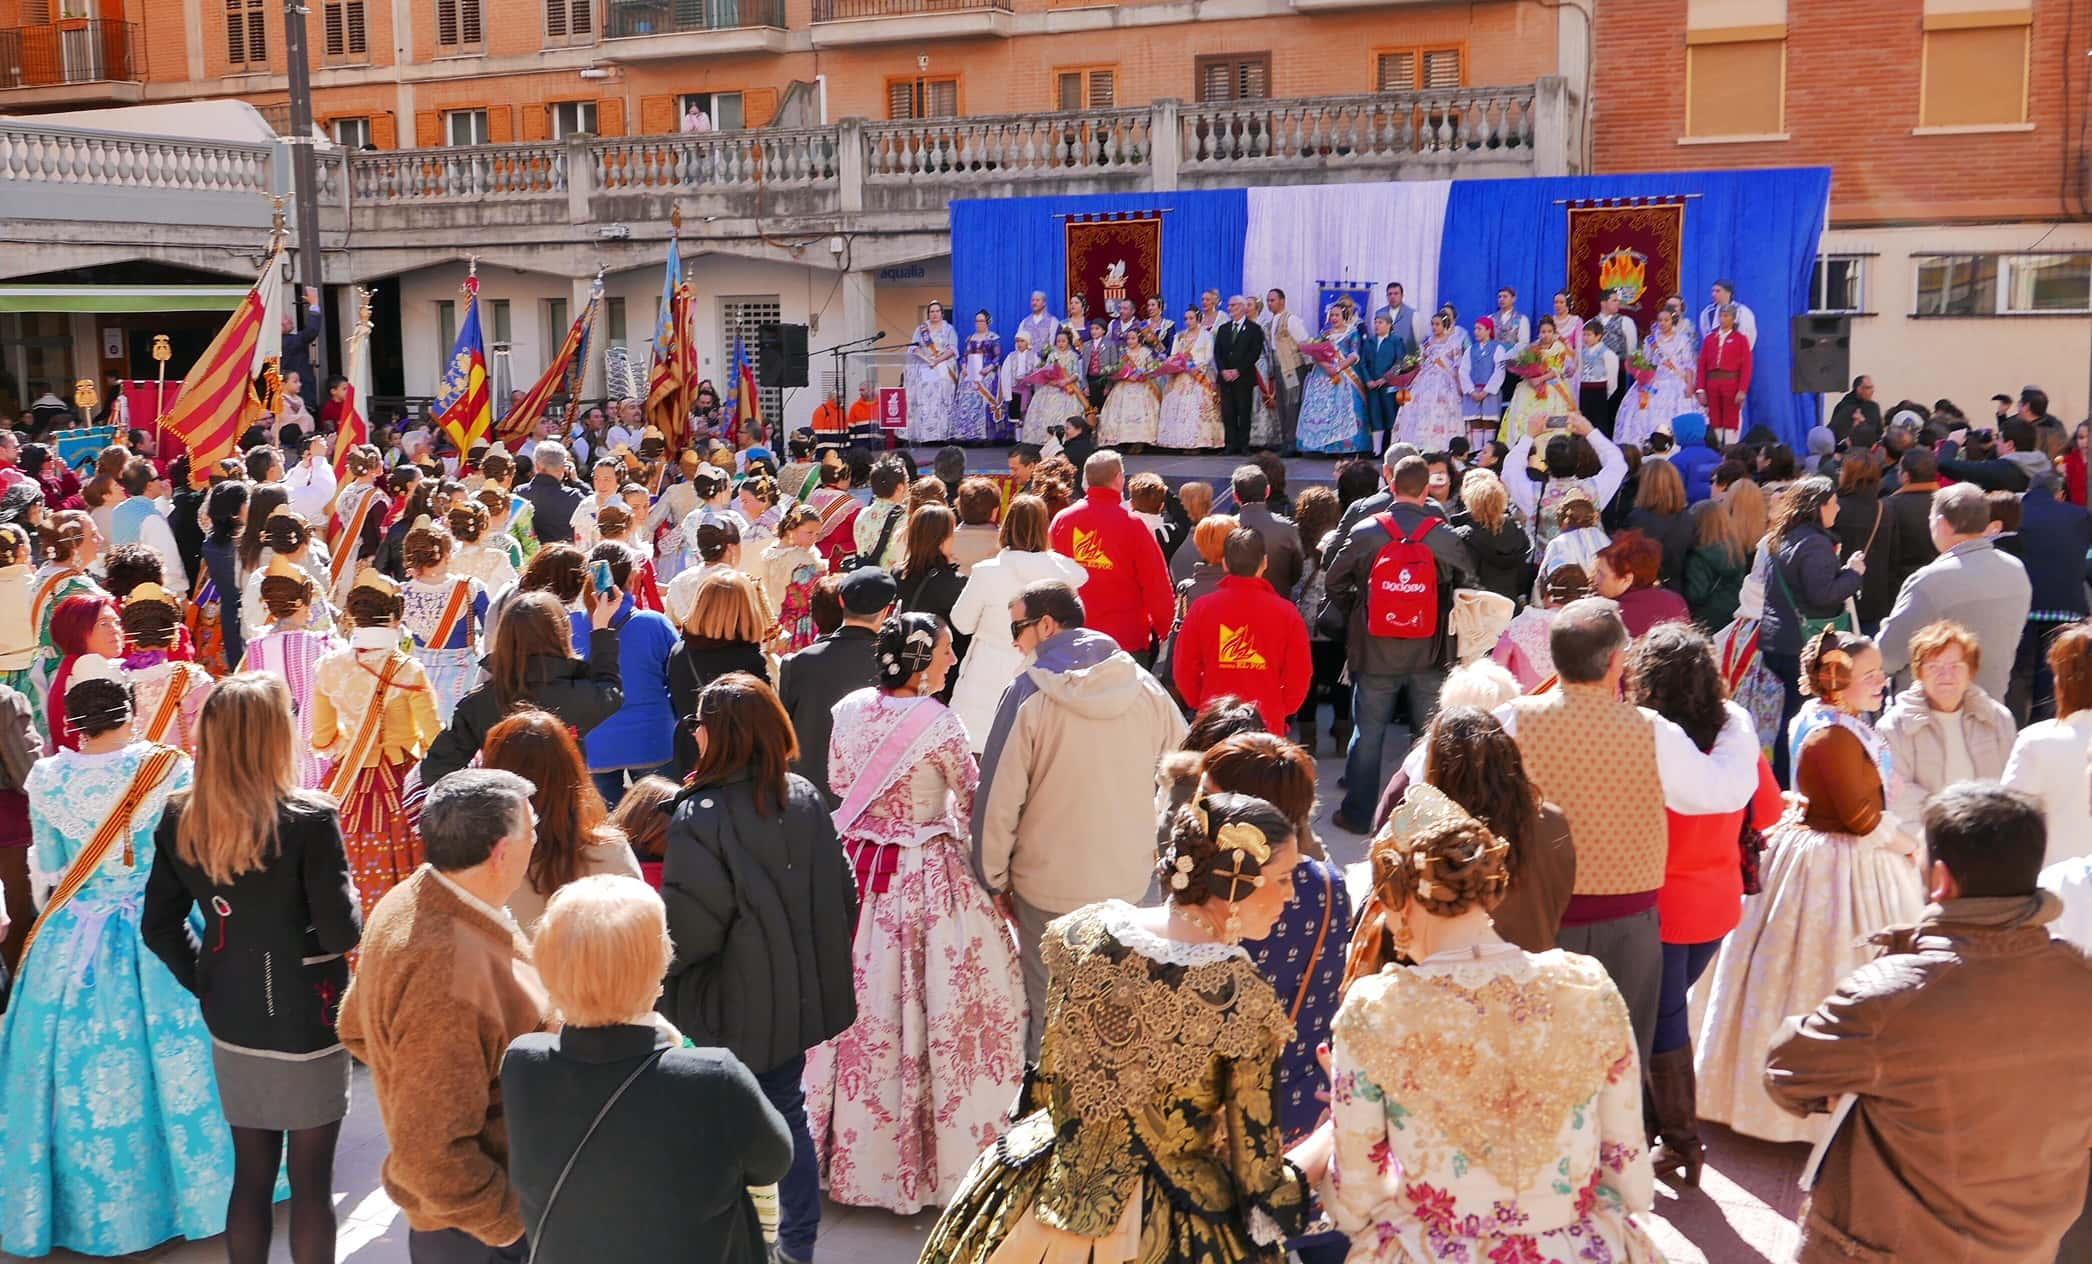 The call marks the beginning of the Fallas 2015 in alboraya